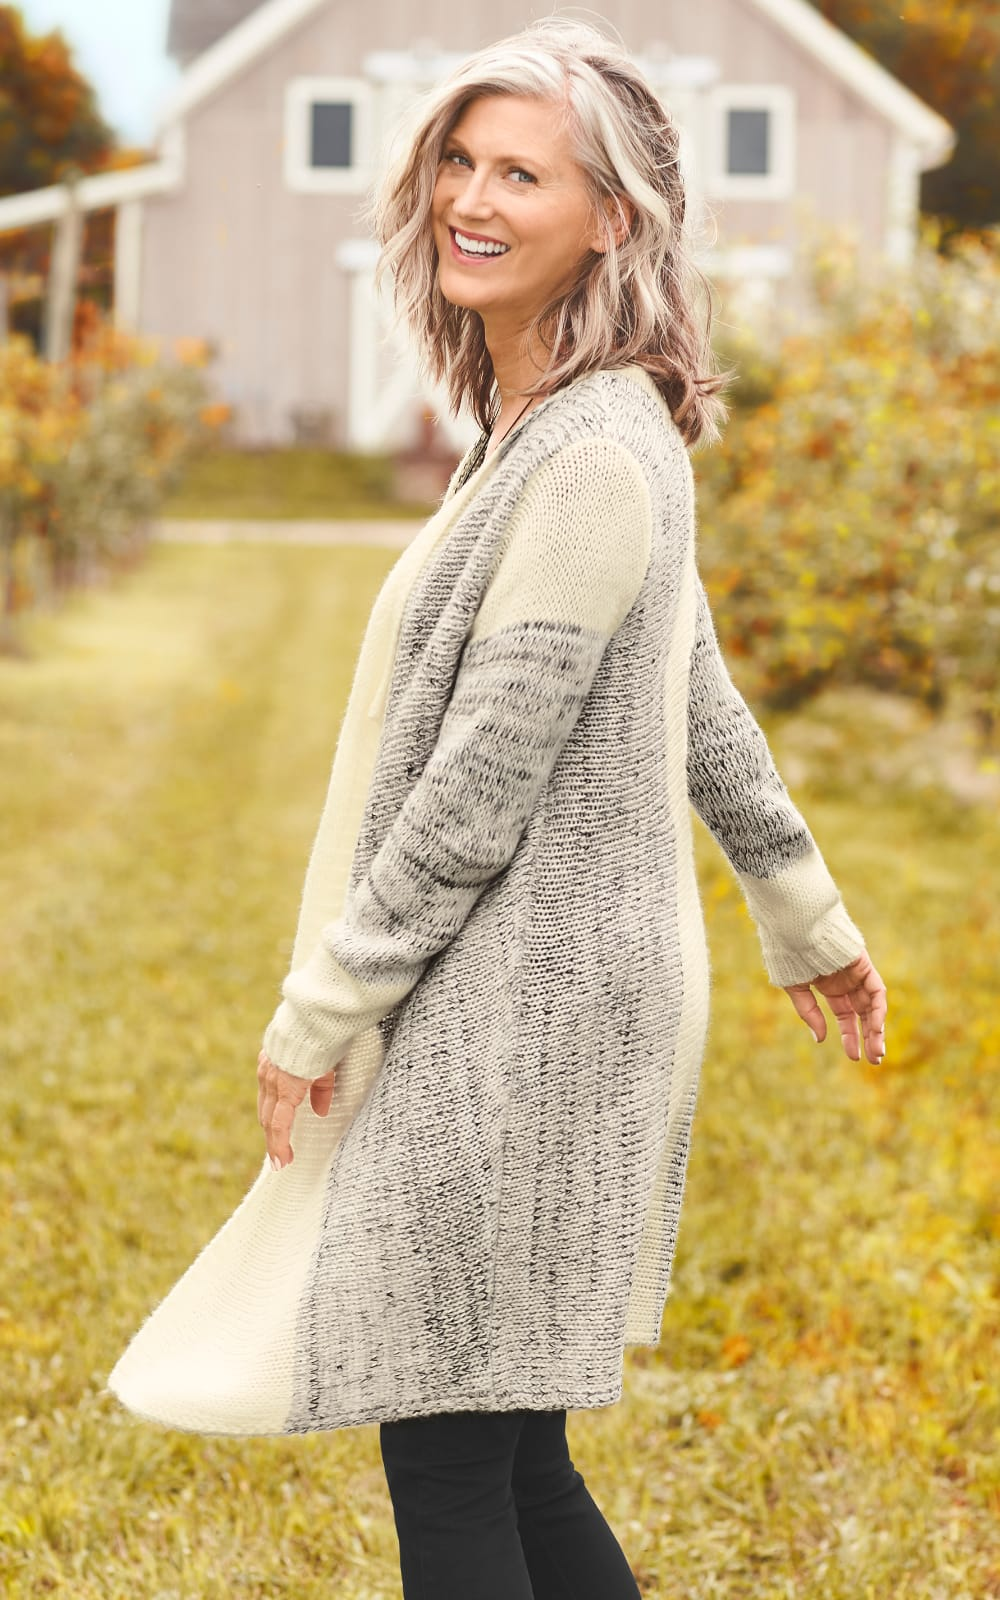 The Color Blocked Drapey Cardigan Sweater.